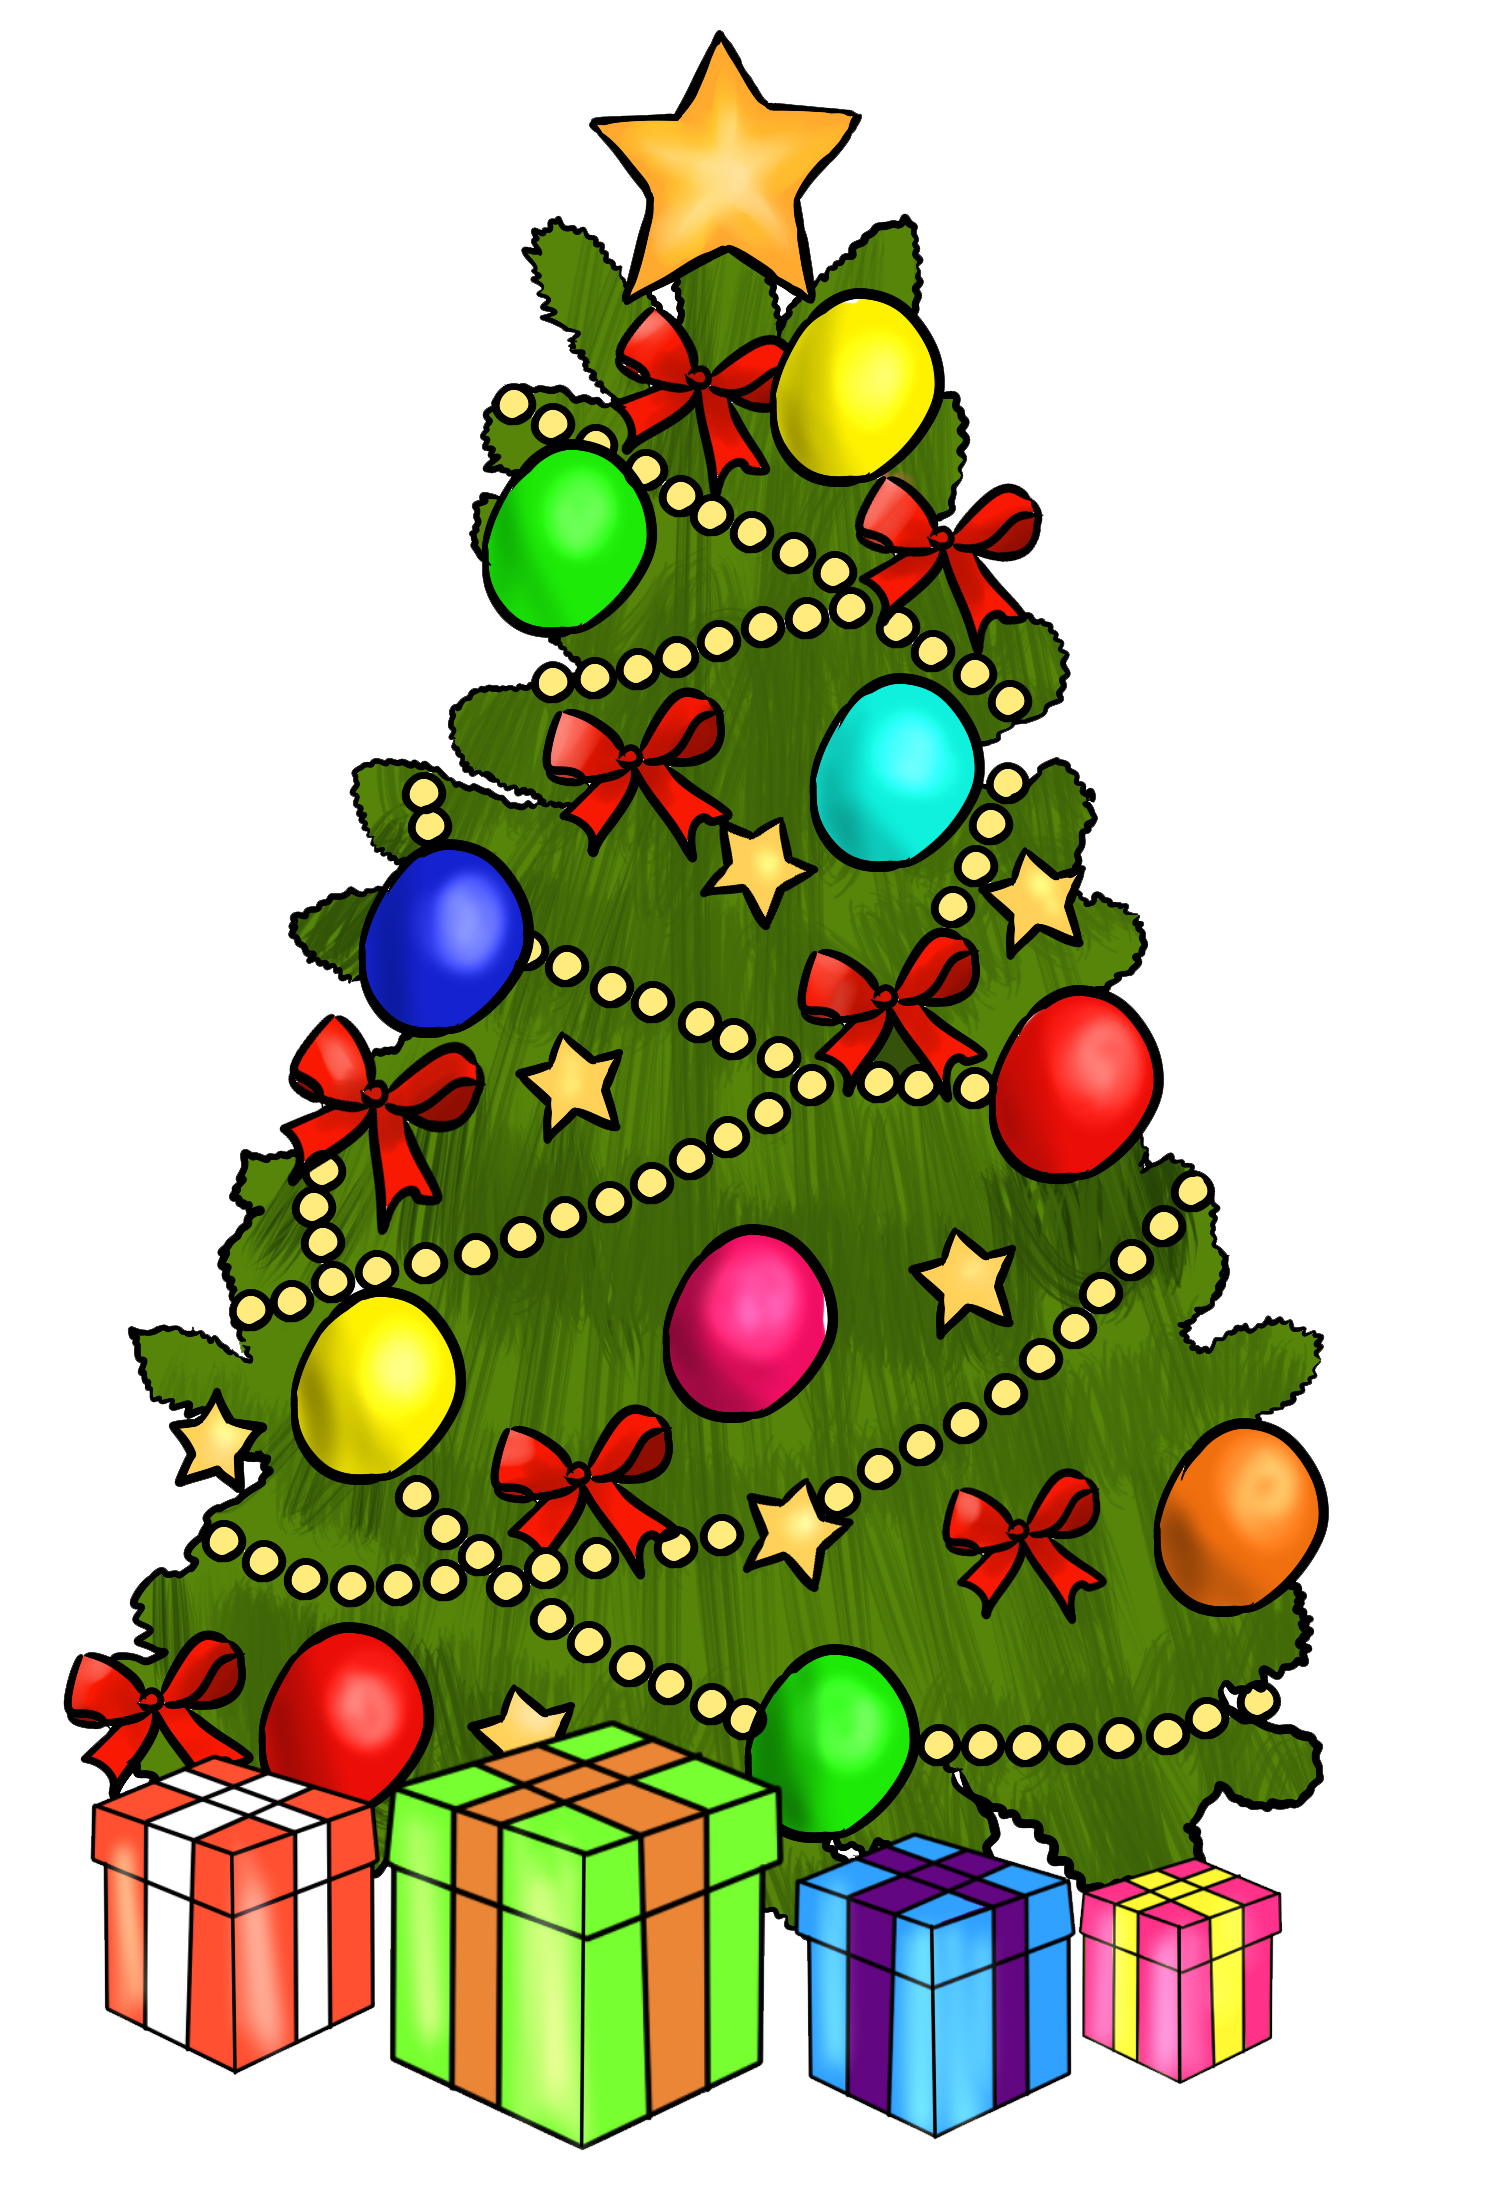 Christmas Clip Art Free Large Images-Christmas clip art free large images-7